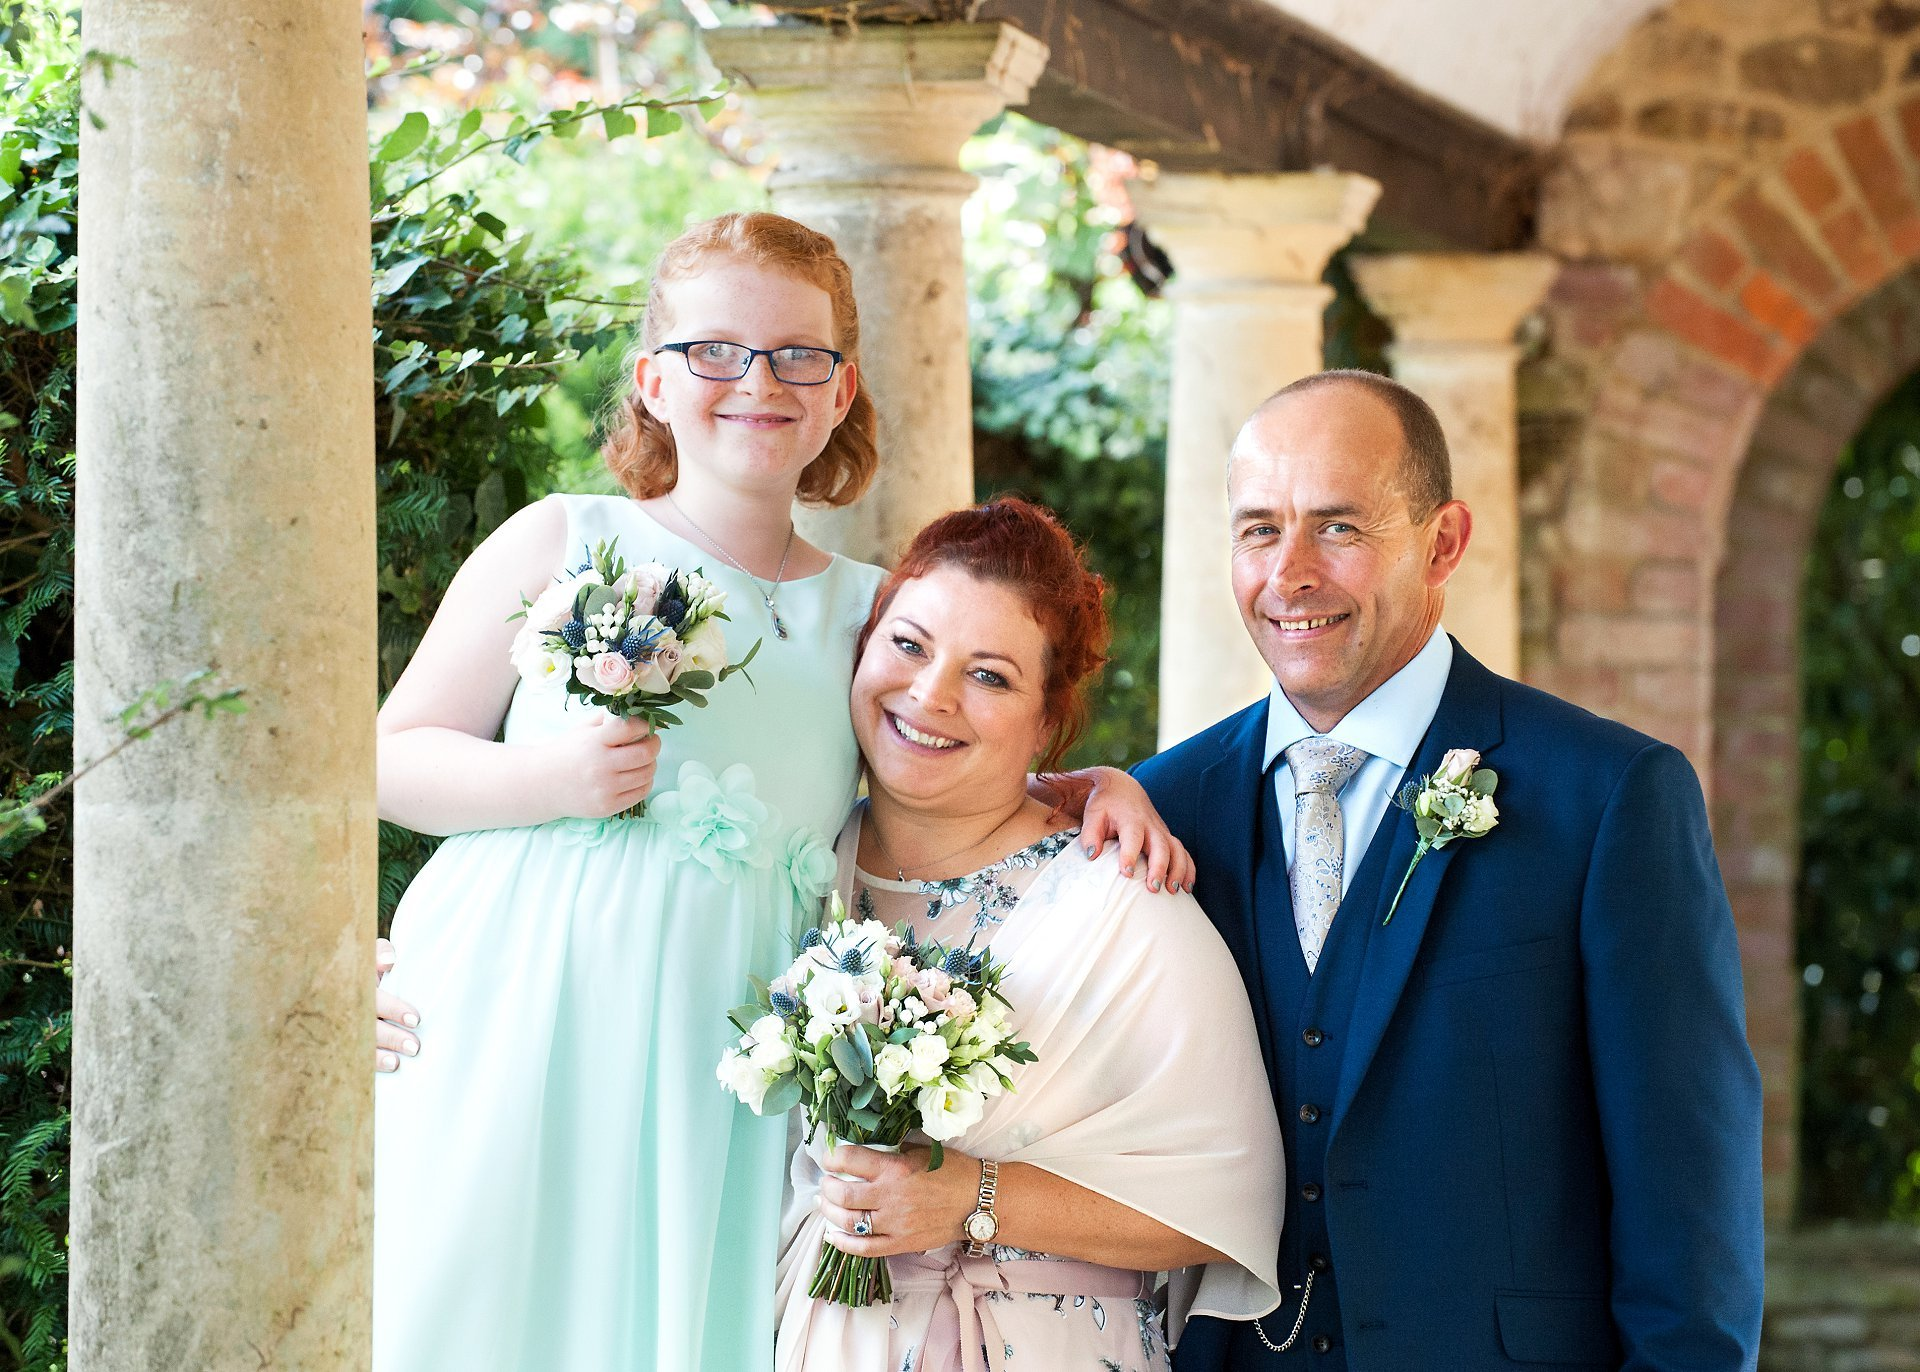 A family from New Zealand celebrate their West Sussex wedding at Ghyll manor near Horsham